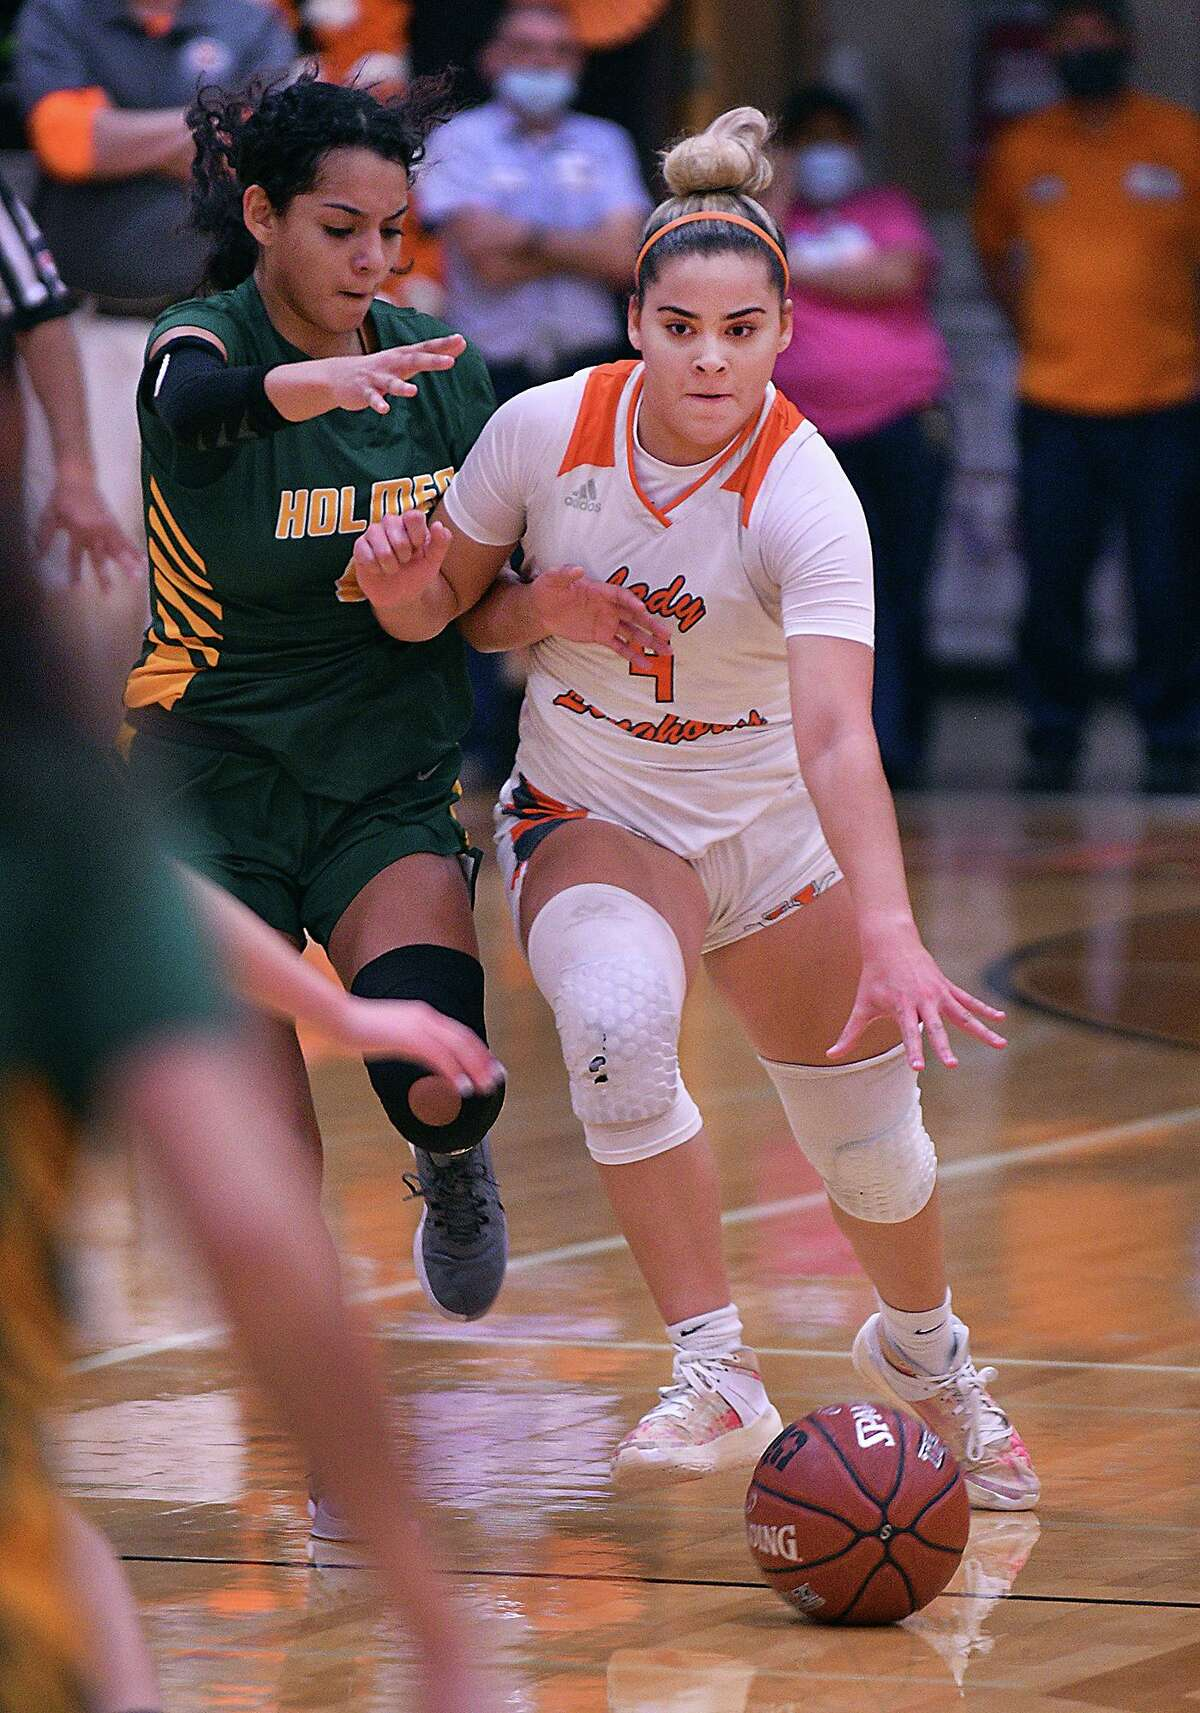 Evelyn Quiroz drives to the basket Wednesday in United's 71-58 win over San Antonio Holmes. Quiroz had a double-double with a season-high 25 points and 10 assists.